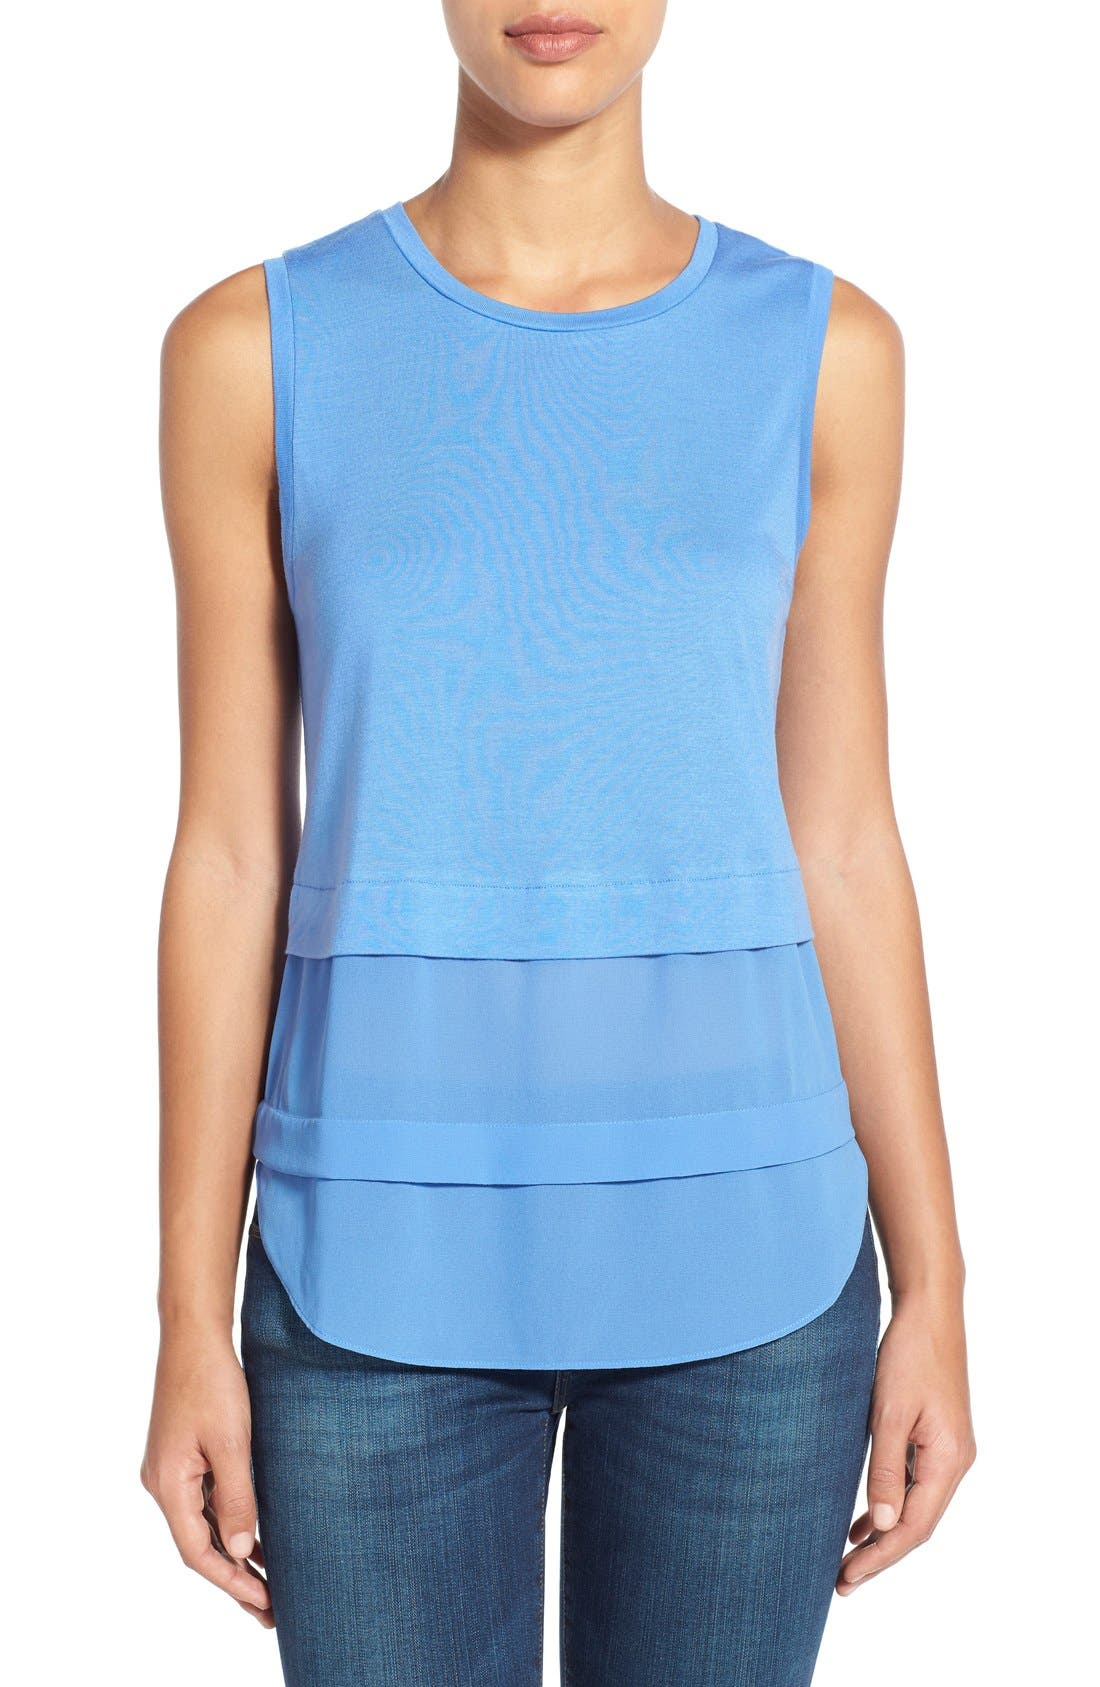 Alternate Image 1 Selected - MICHAEL Michael Kors Mixed Media Sleeveless Top (Regular & Petite)